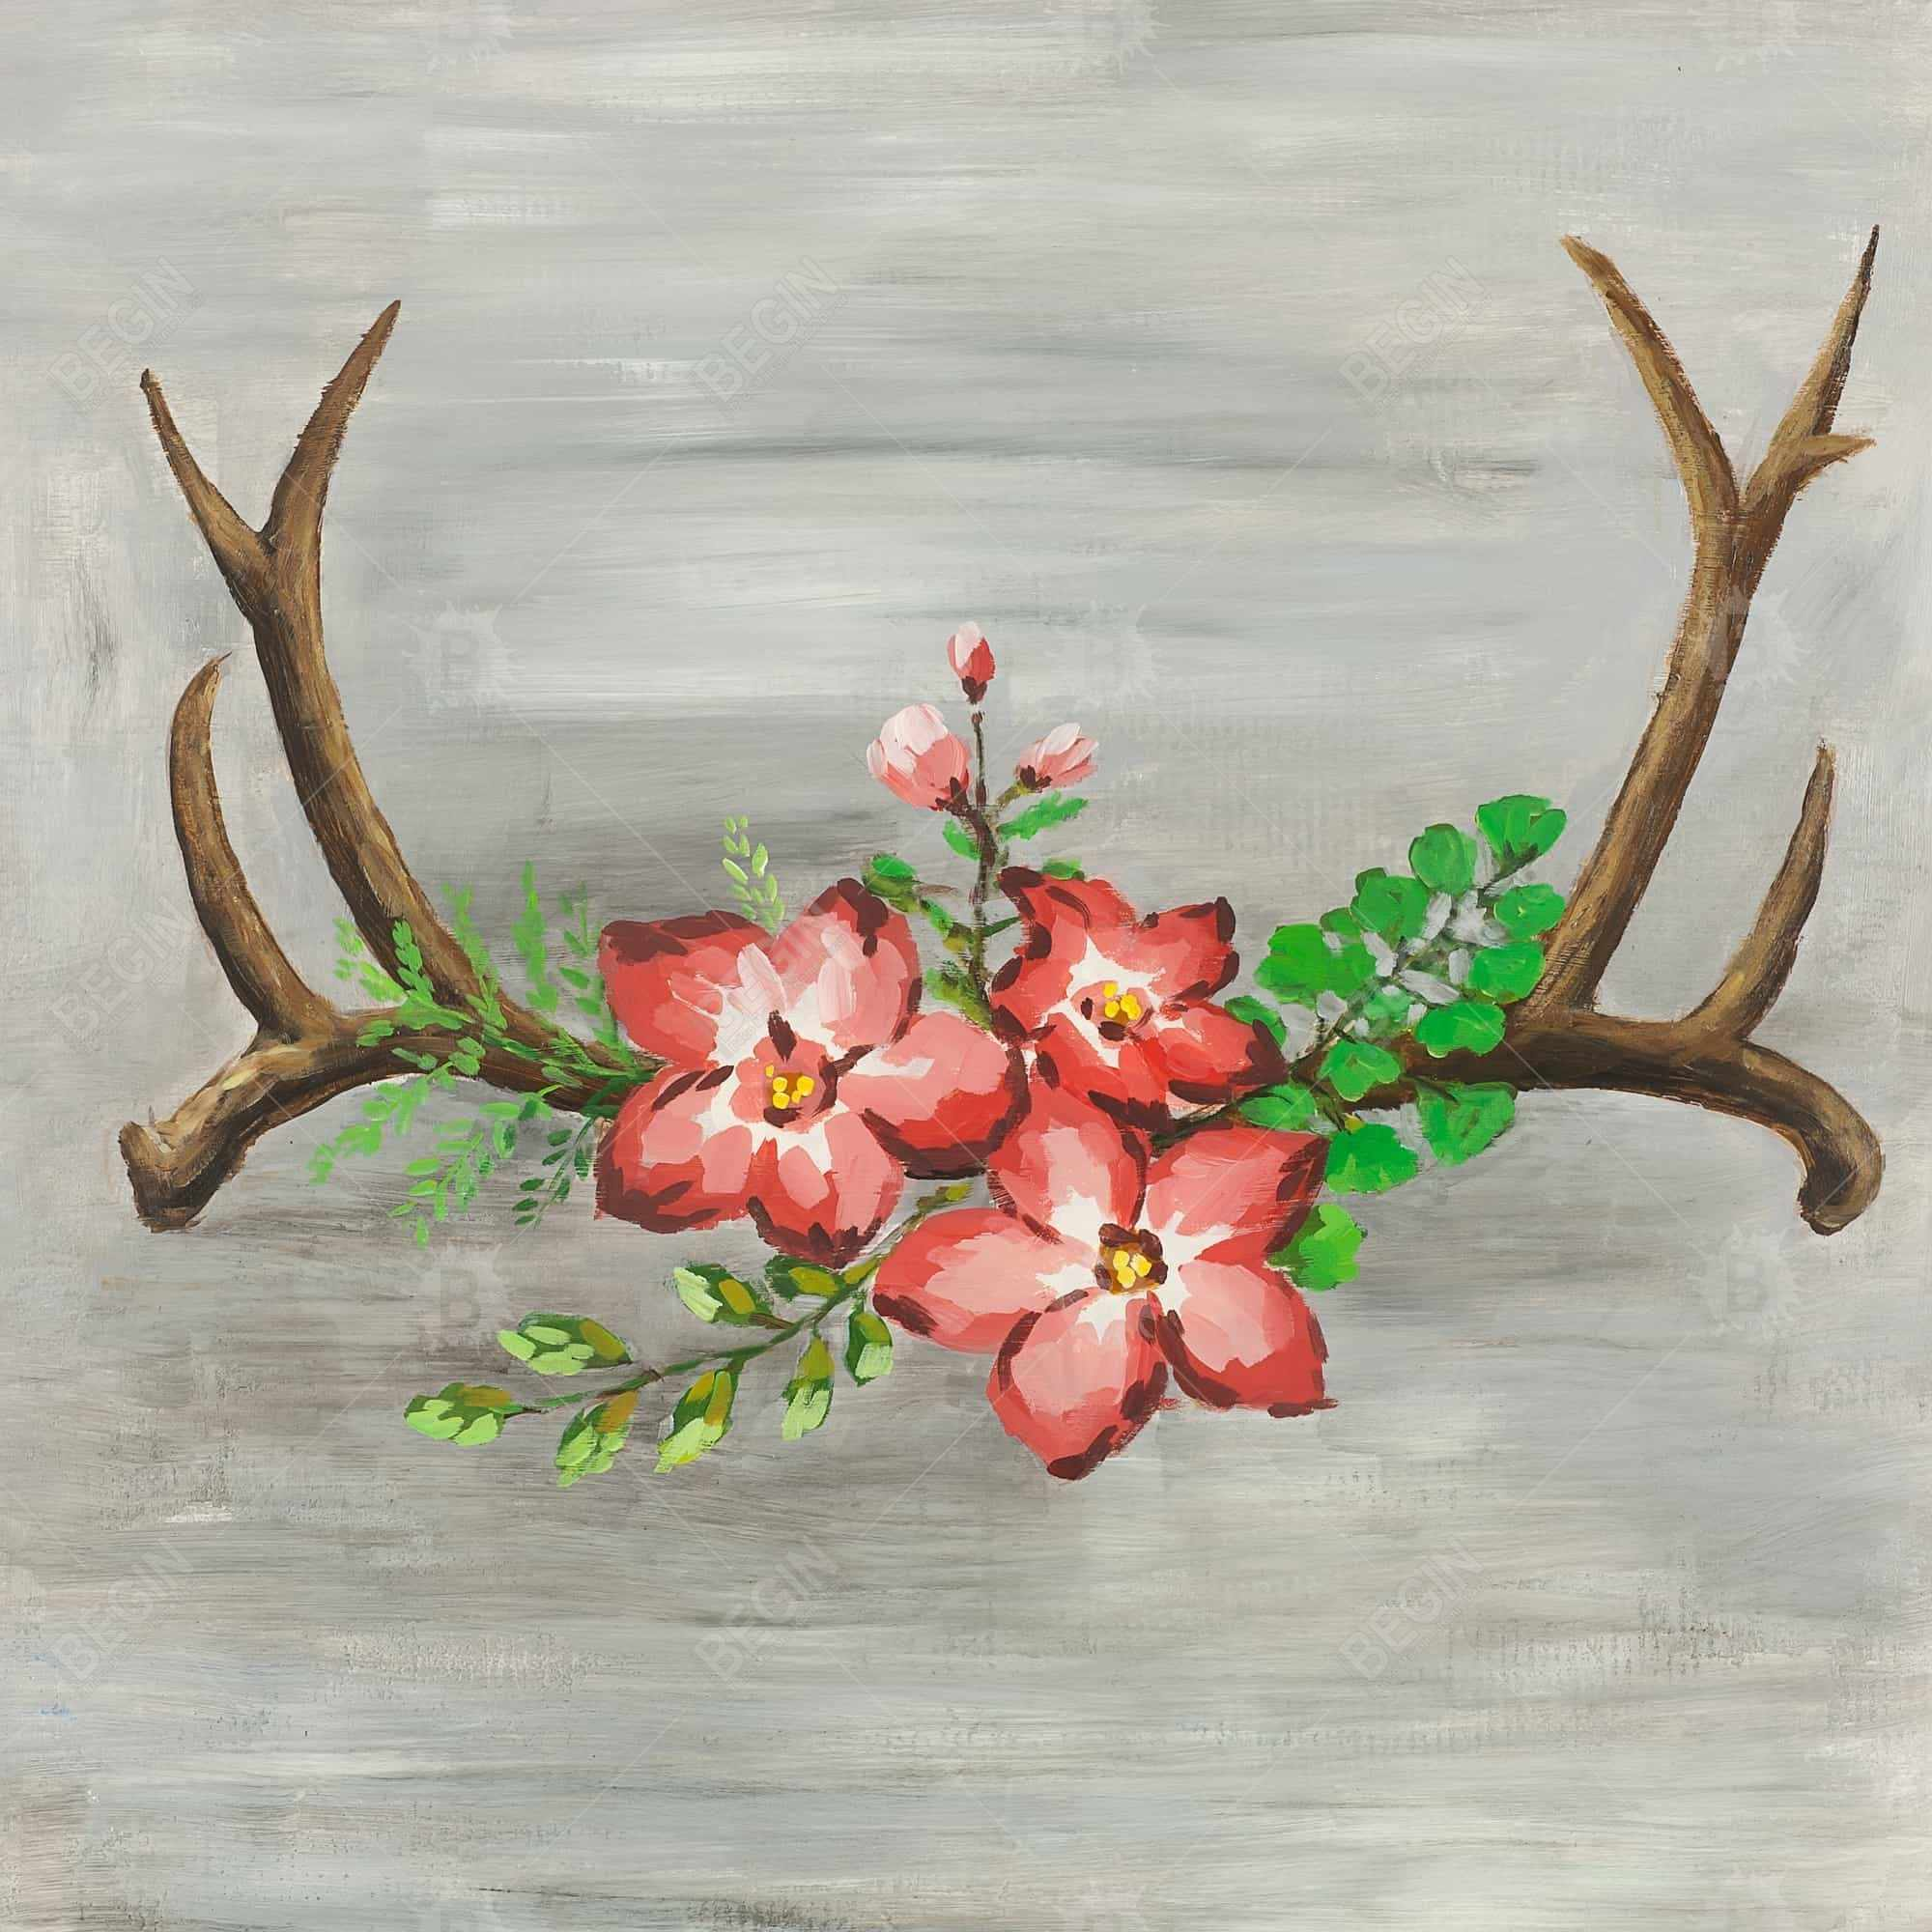 Deer horns and pink flowers